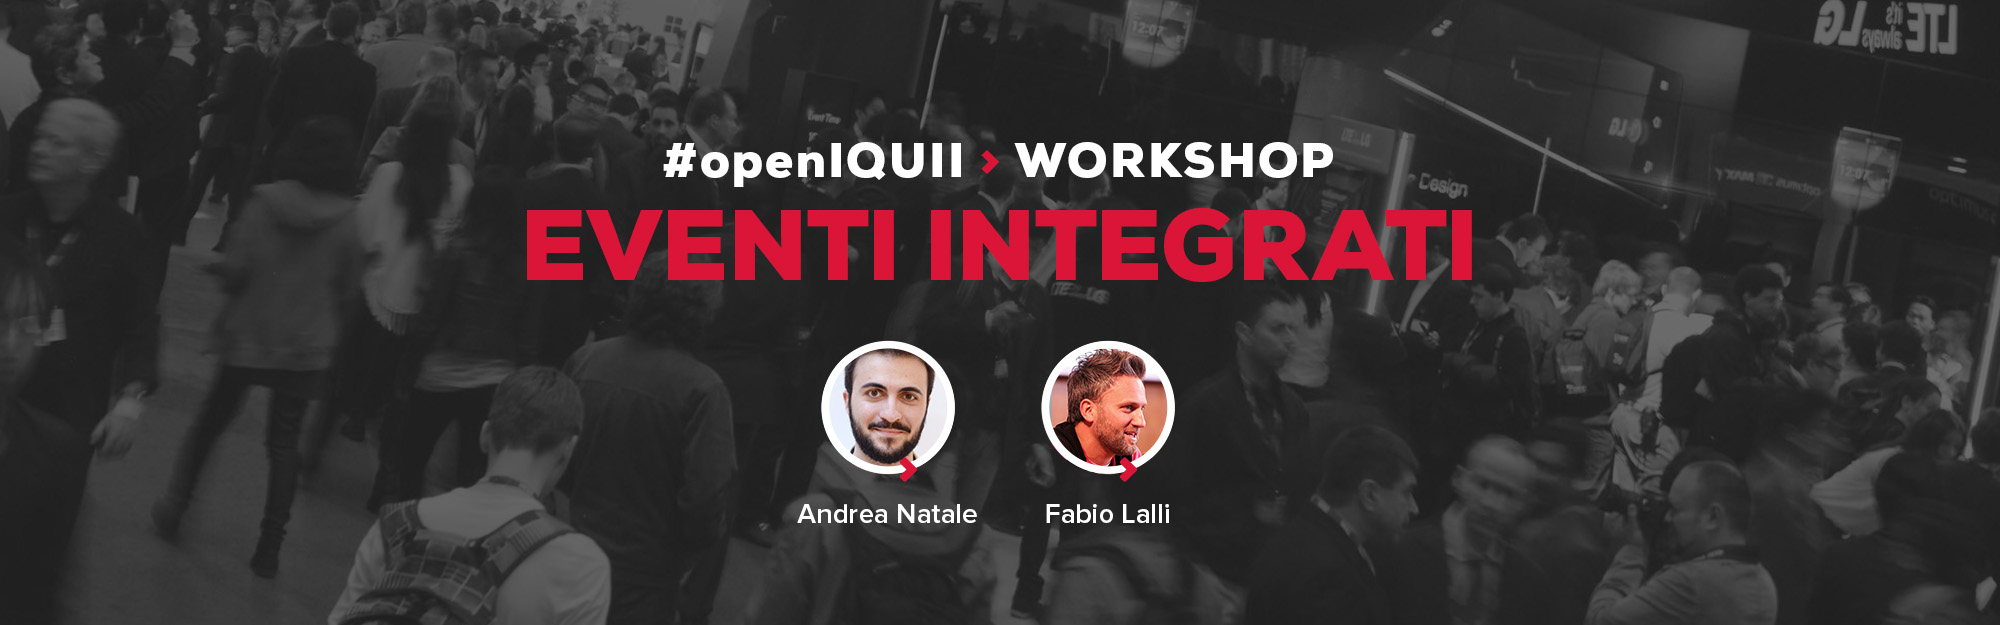 #openIQUII – Workshop Eventi Integrati